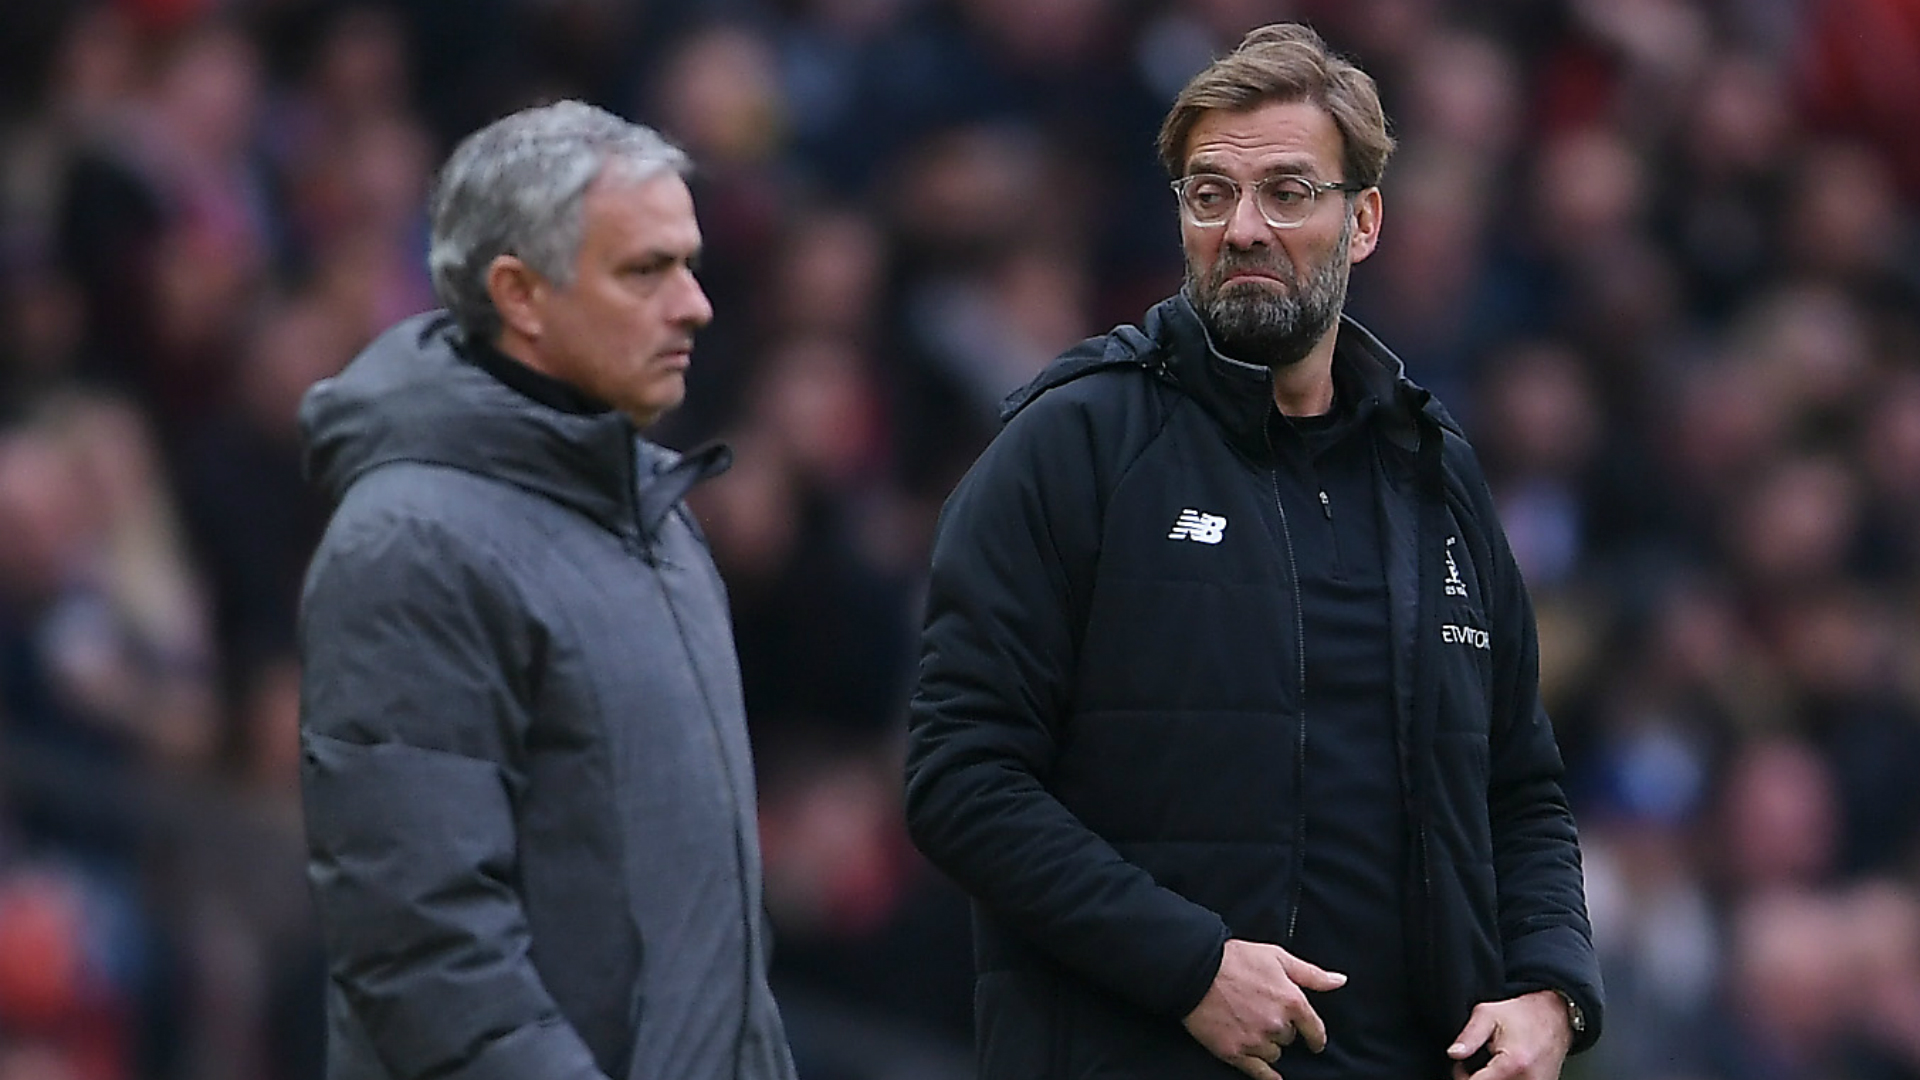 Mourinho had to 'take the consequences', says Klopp